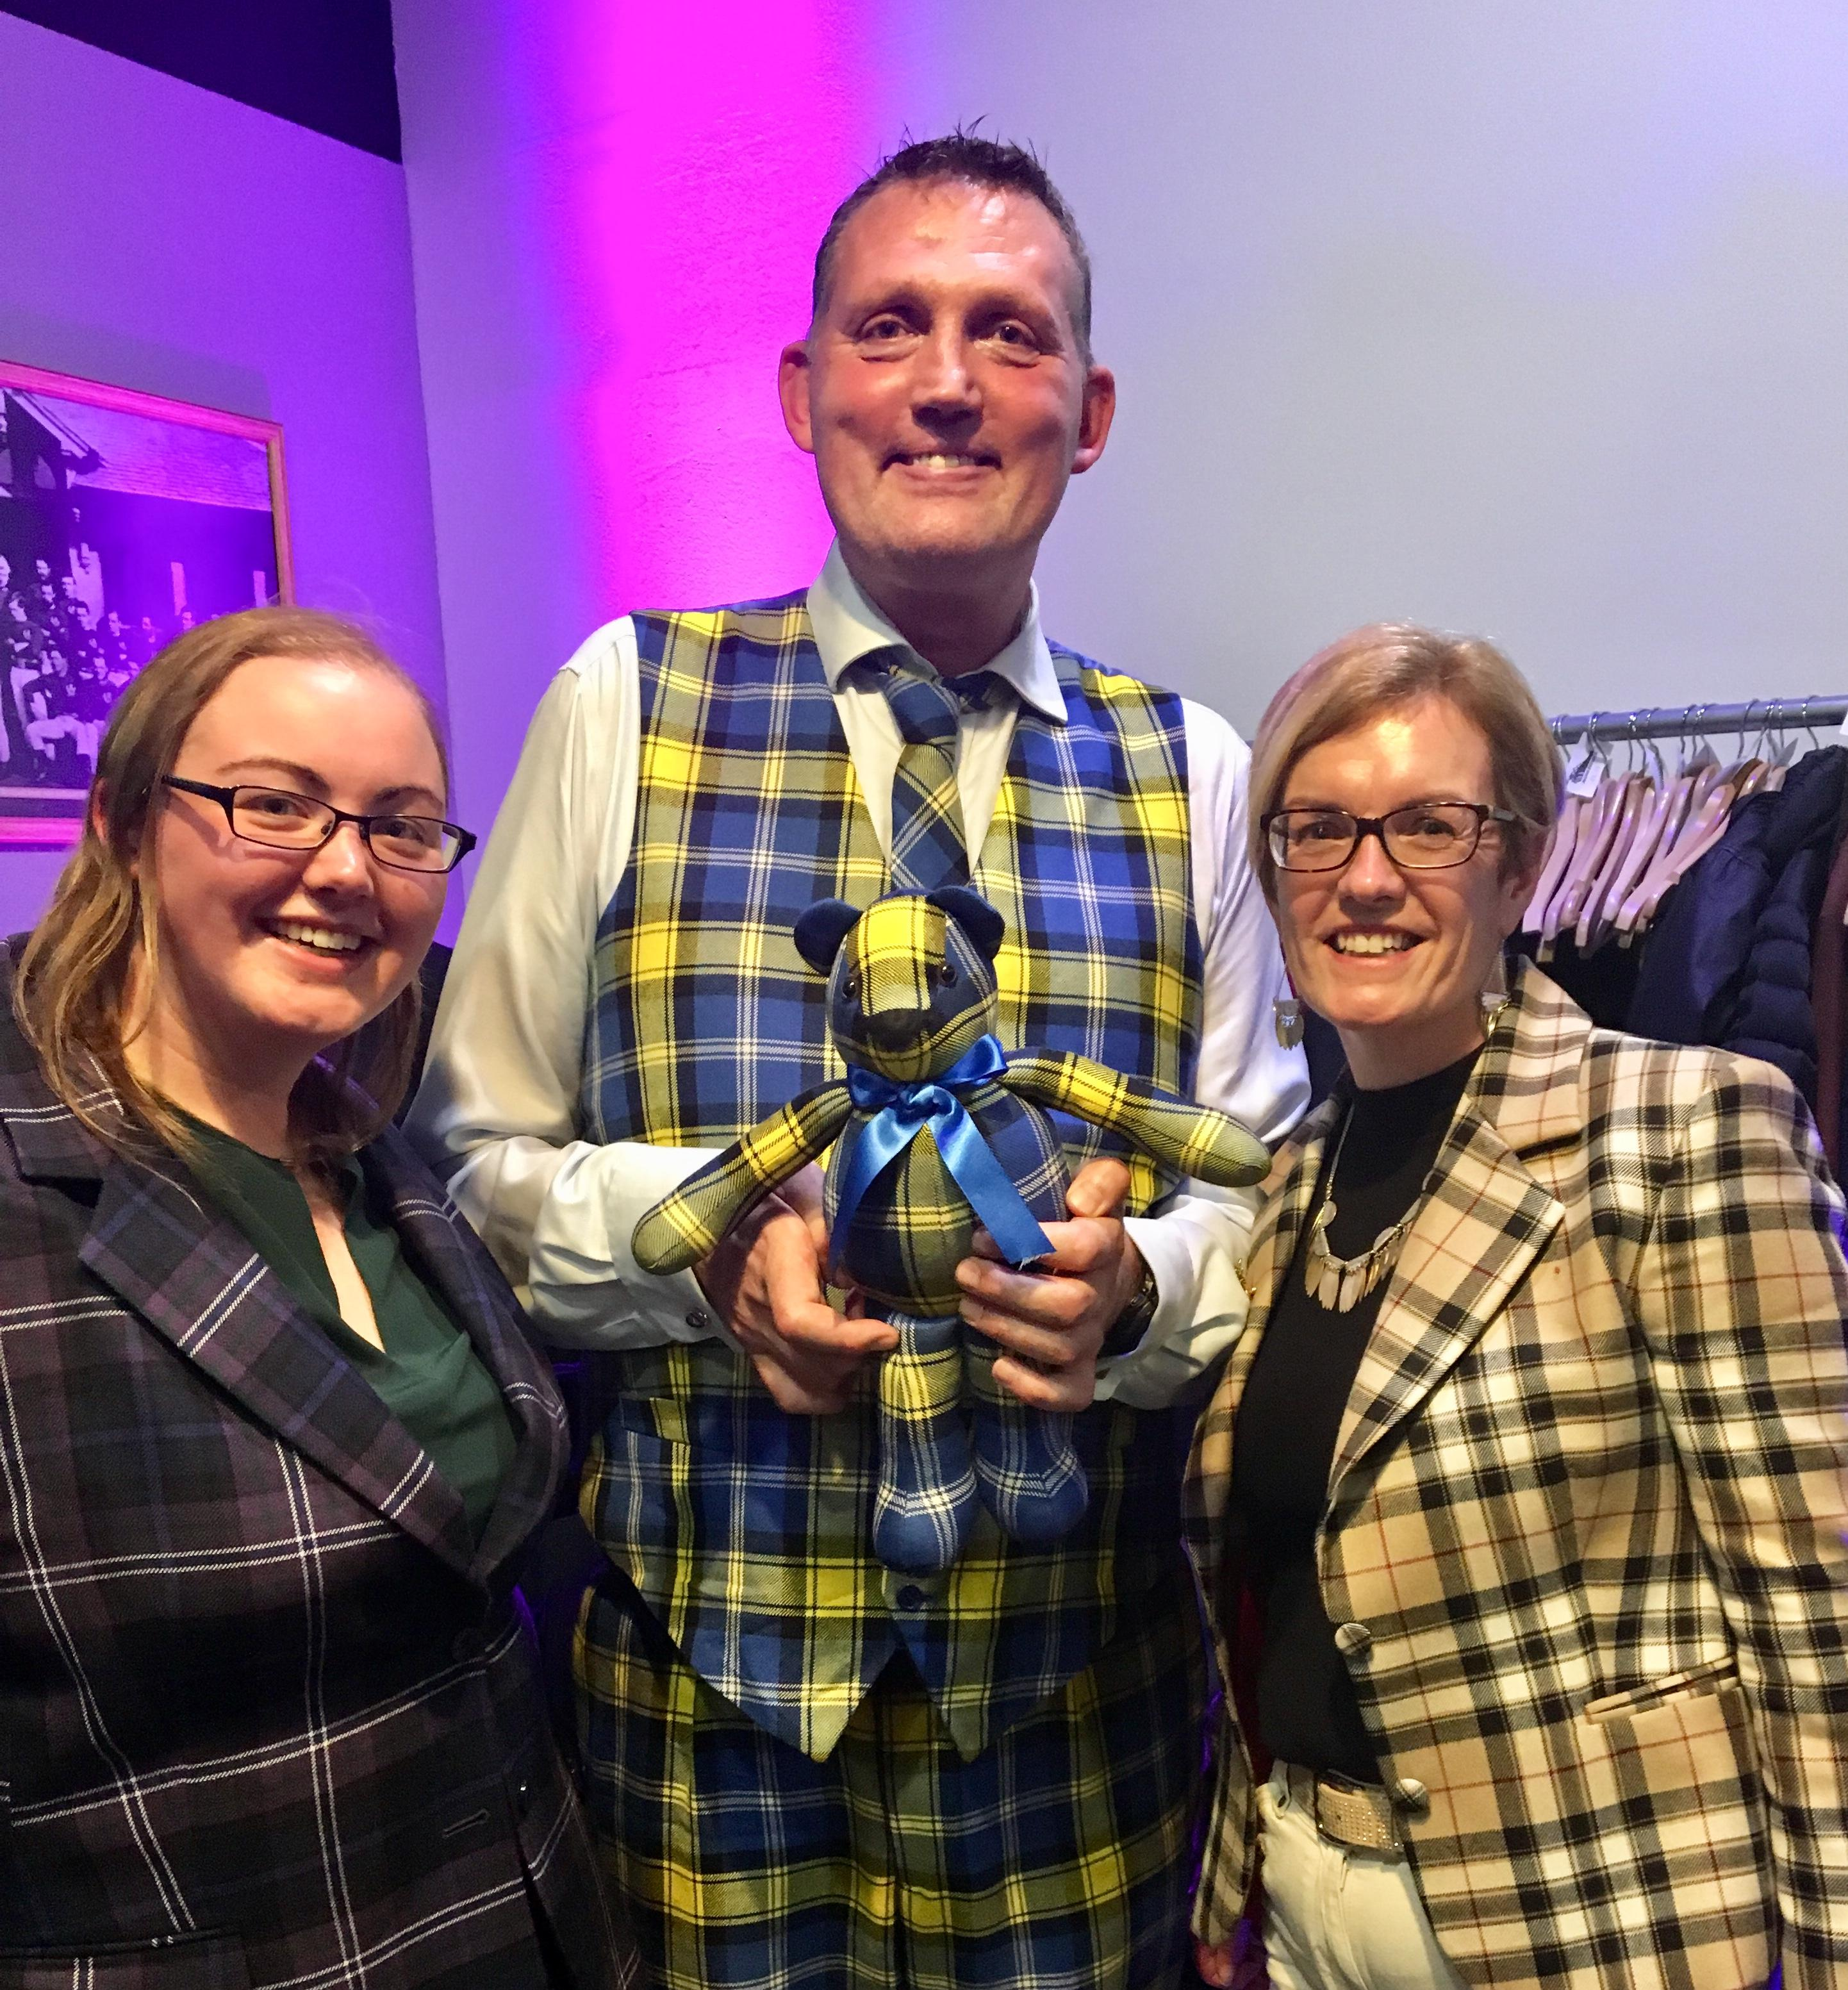 Doddie'5 Tartan Ted - Doddie'5 Book Launch